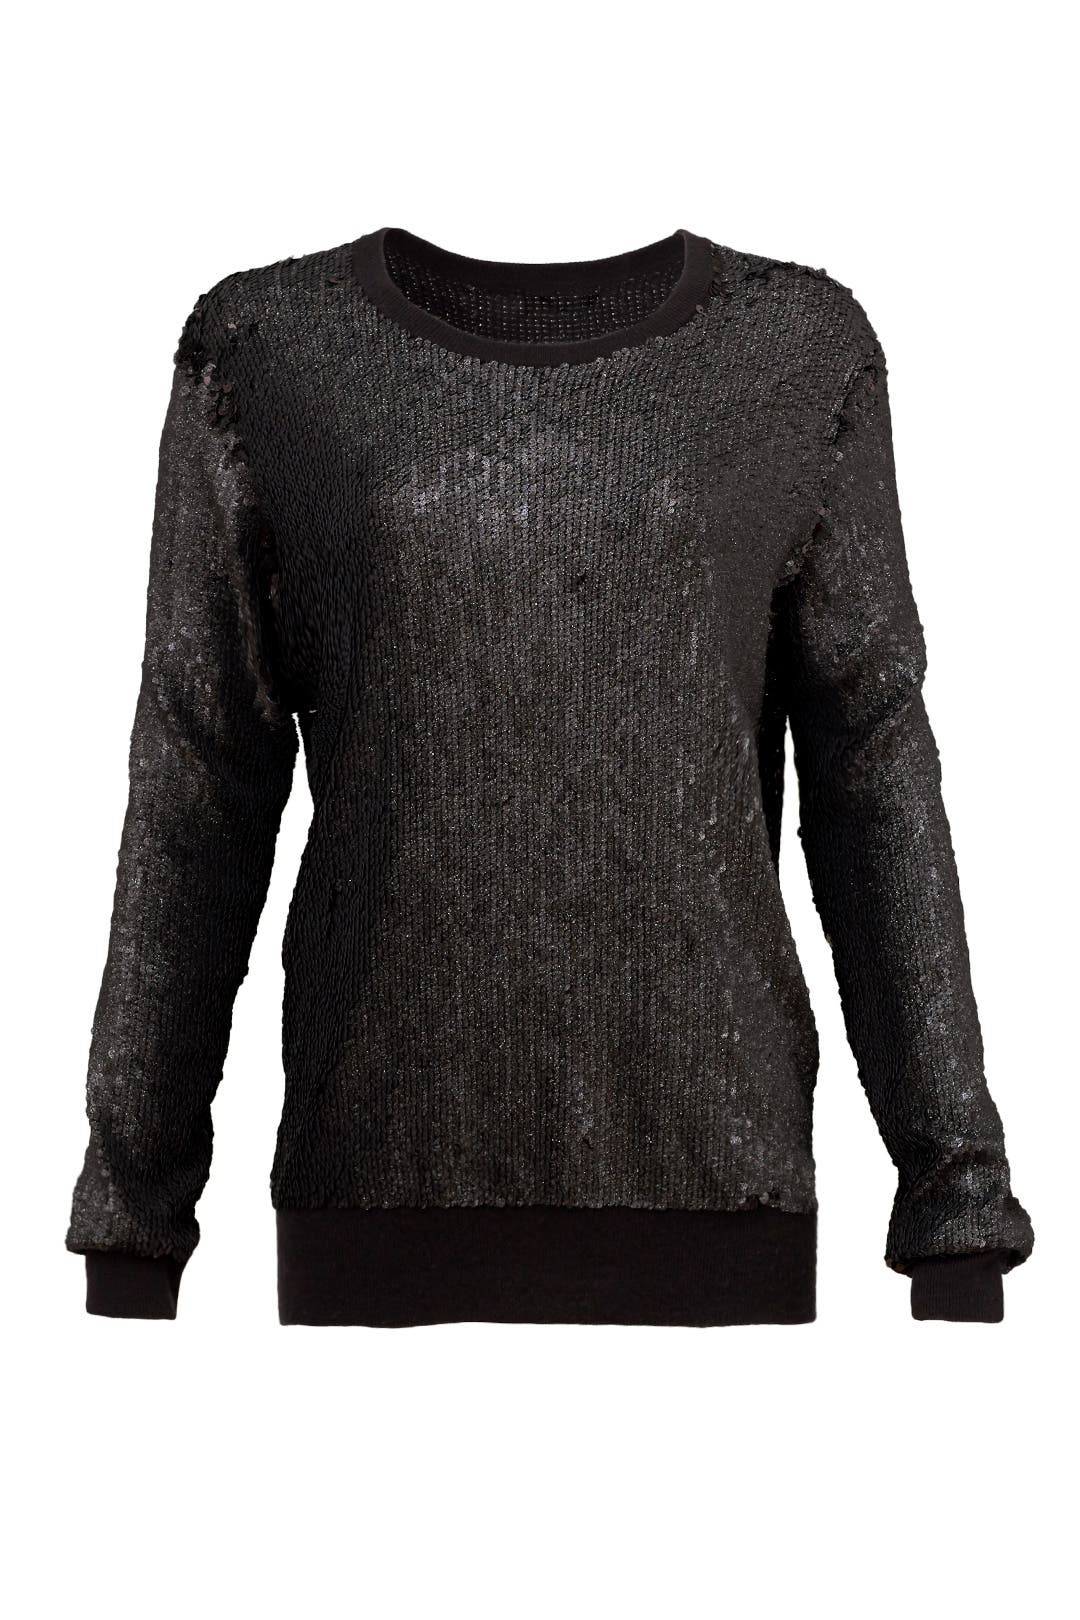 8c687879e971 Crystal Sweater by Equipment for $60   Rent the Runway